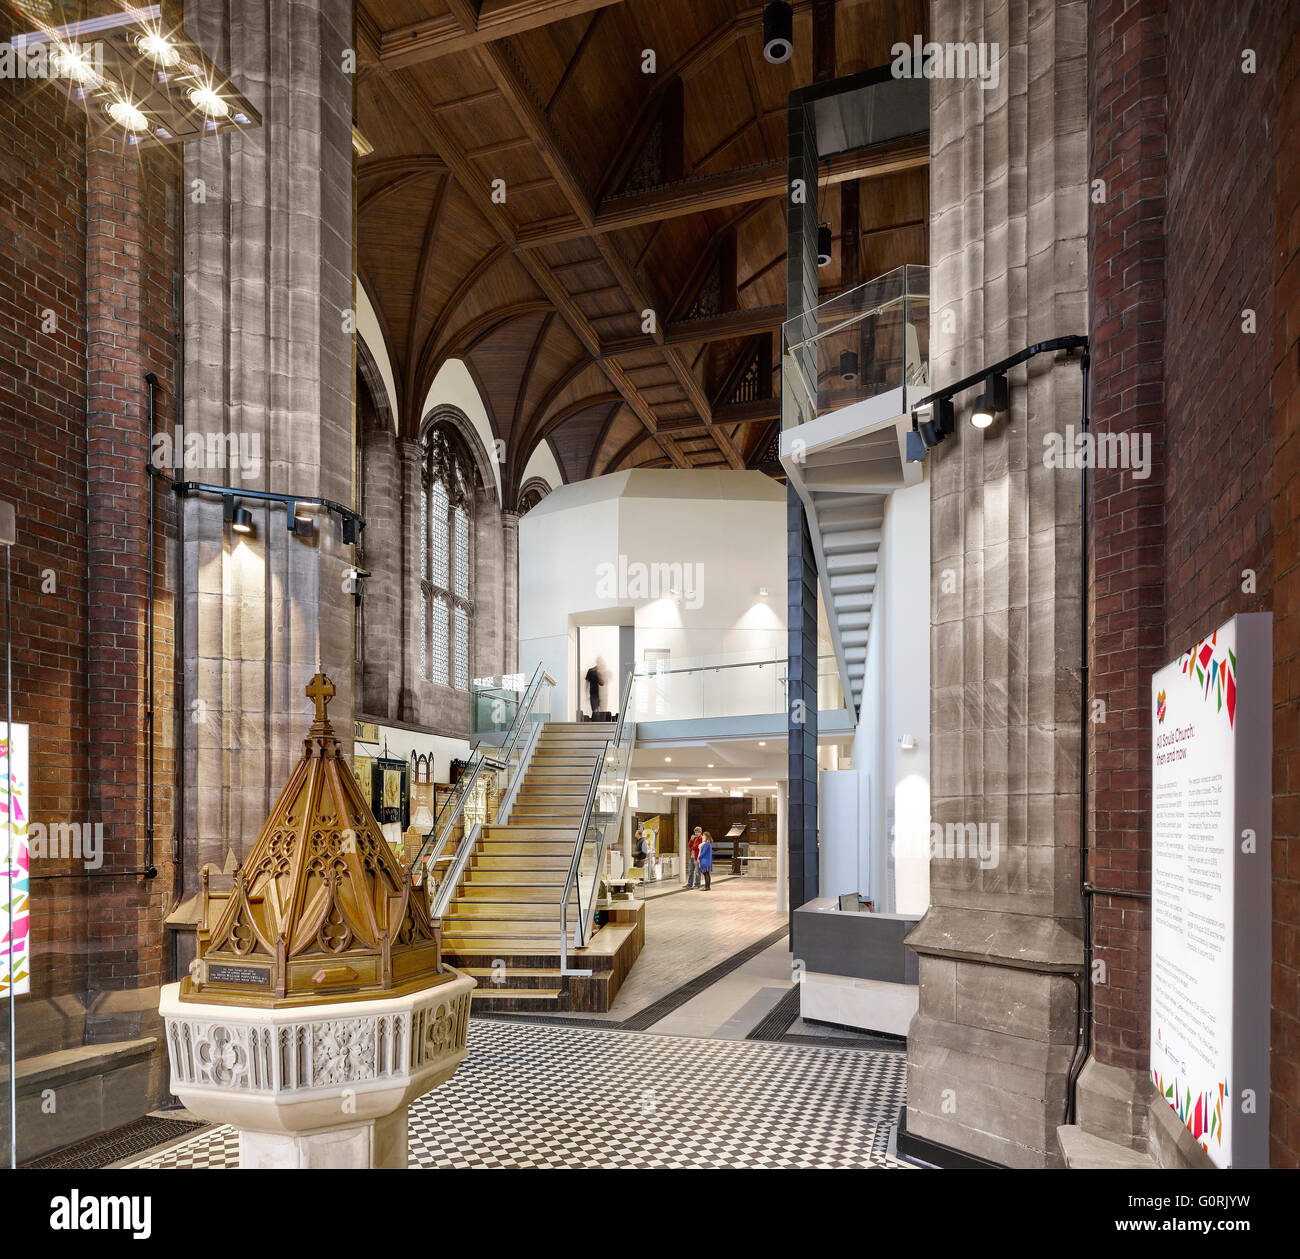 All Souls, Bolton, England. Mix of the traditional and contemporary design inside the church. - Stock Image